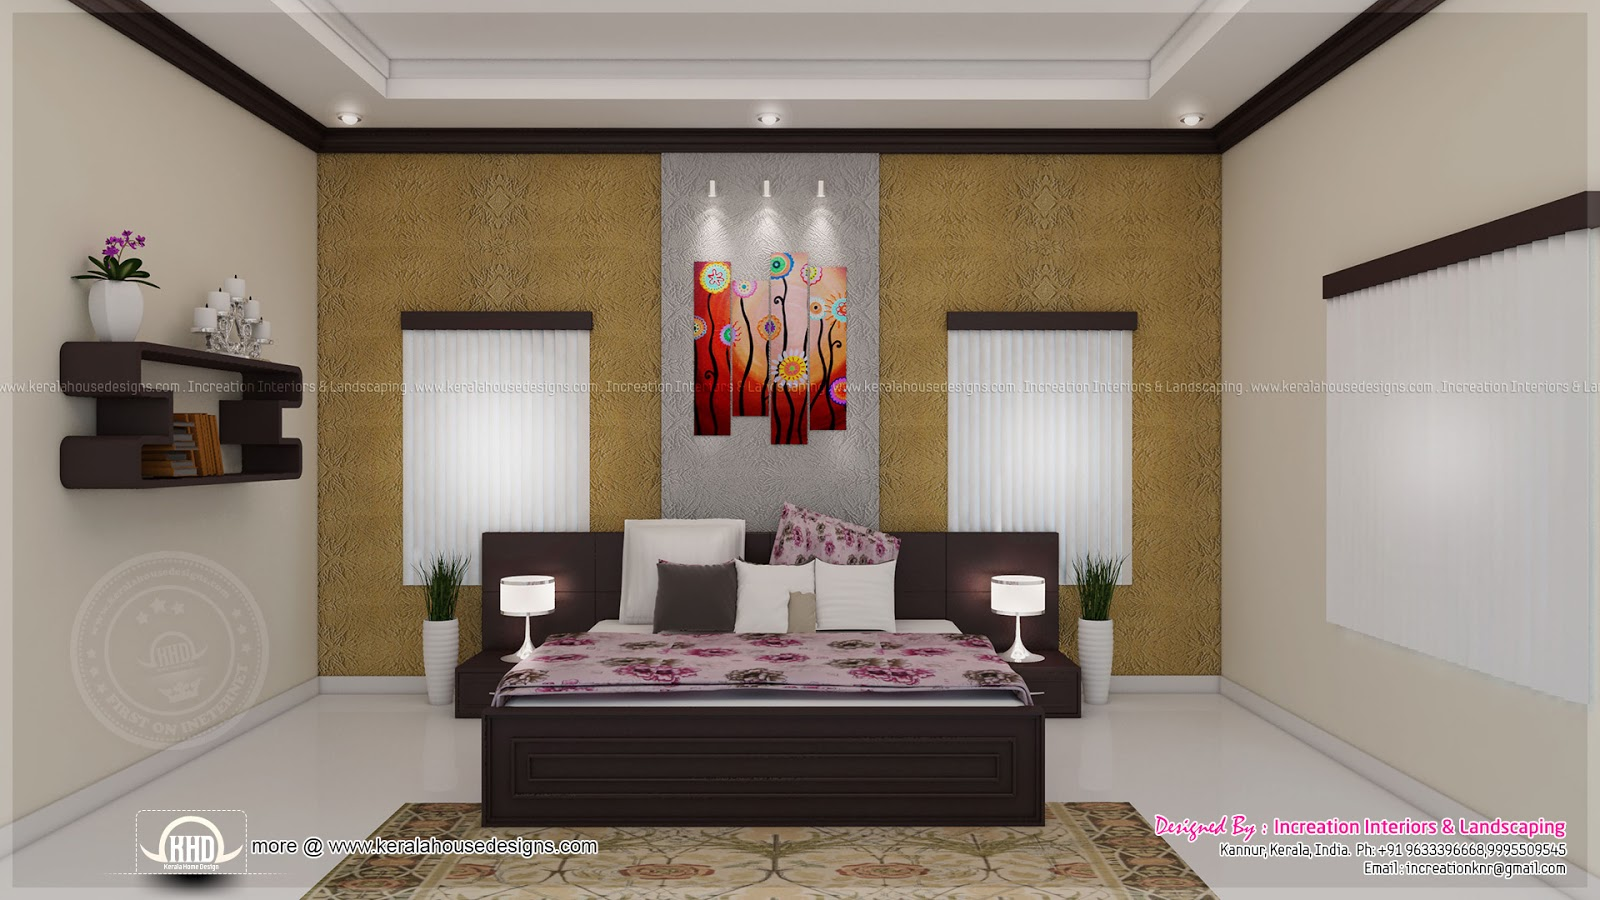 House interior ideas in 3d rendering kerala home design for Bedroom designs photos